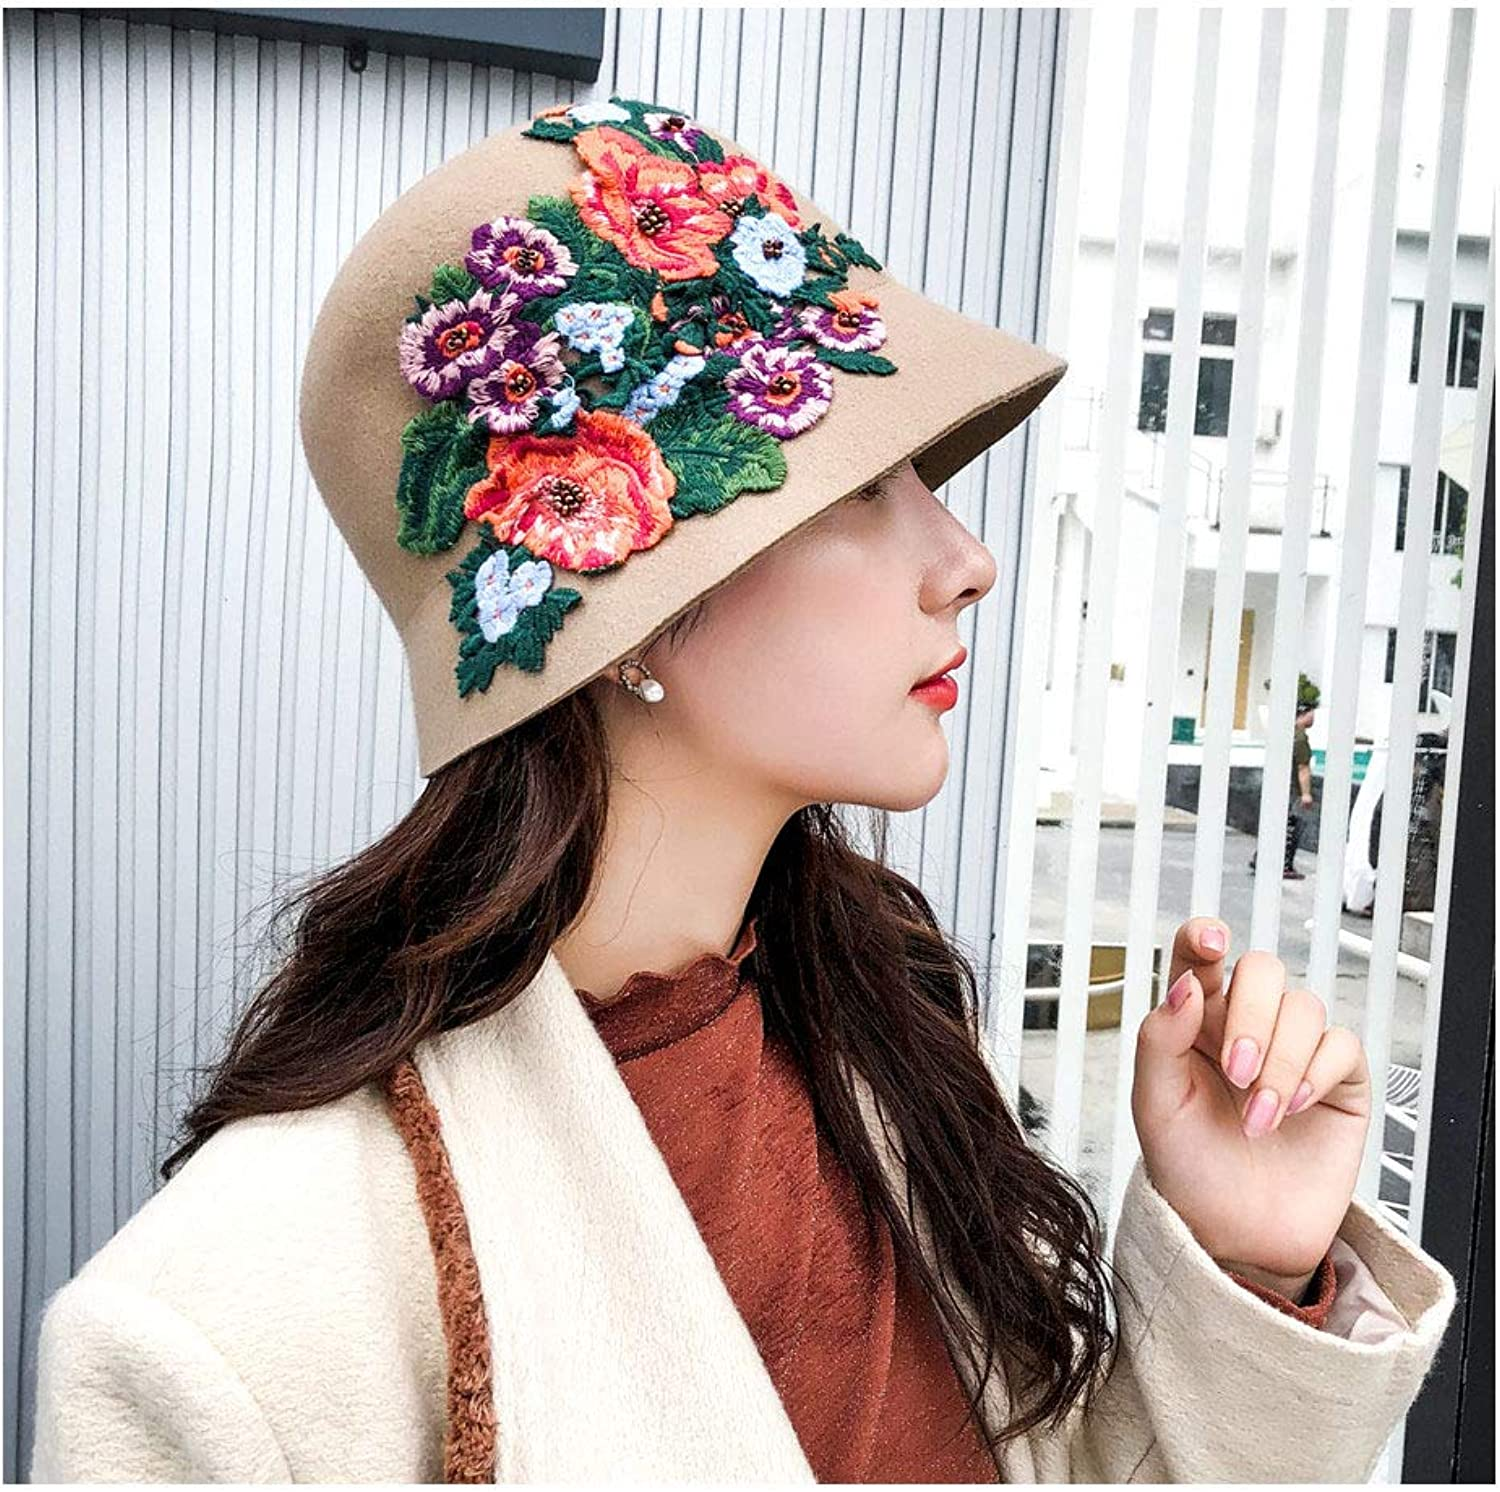 Fashion Hats, Caps,Elegant Hats, Natural Caps Wool Felt Hat National Style Female Fedoras HandCrocheted Peony Floral Dome Bucket Fedora Hats for Women (color   Tan, Size   5658cm)